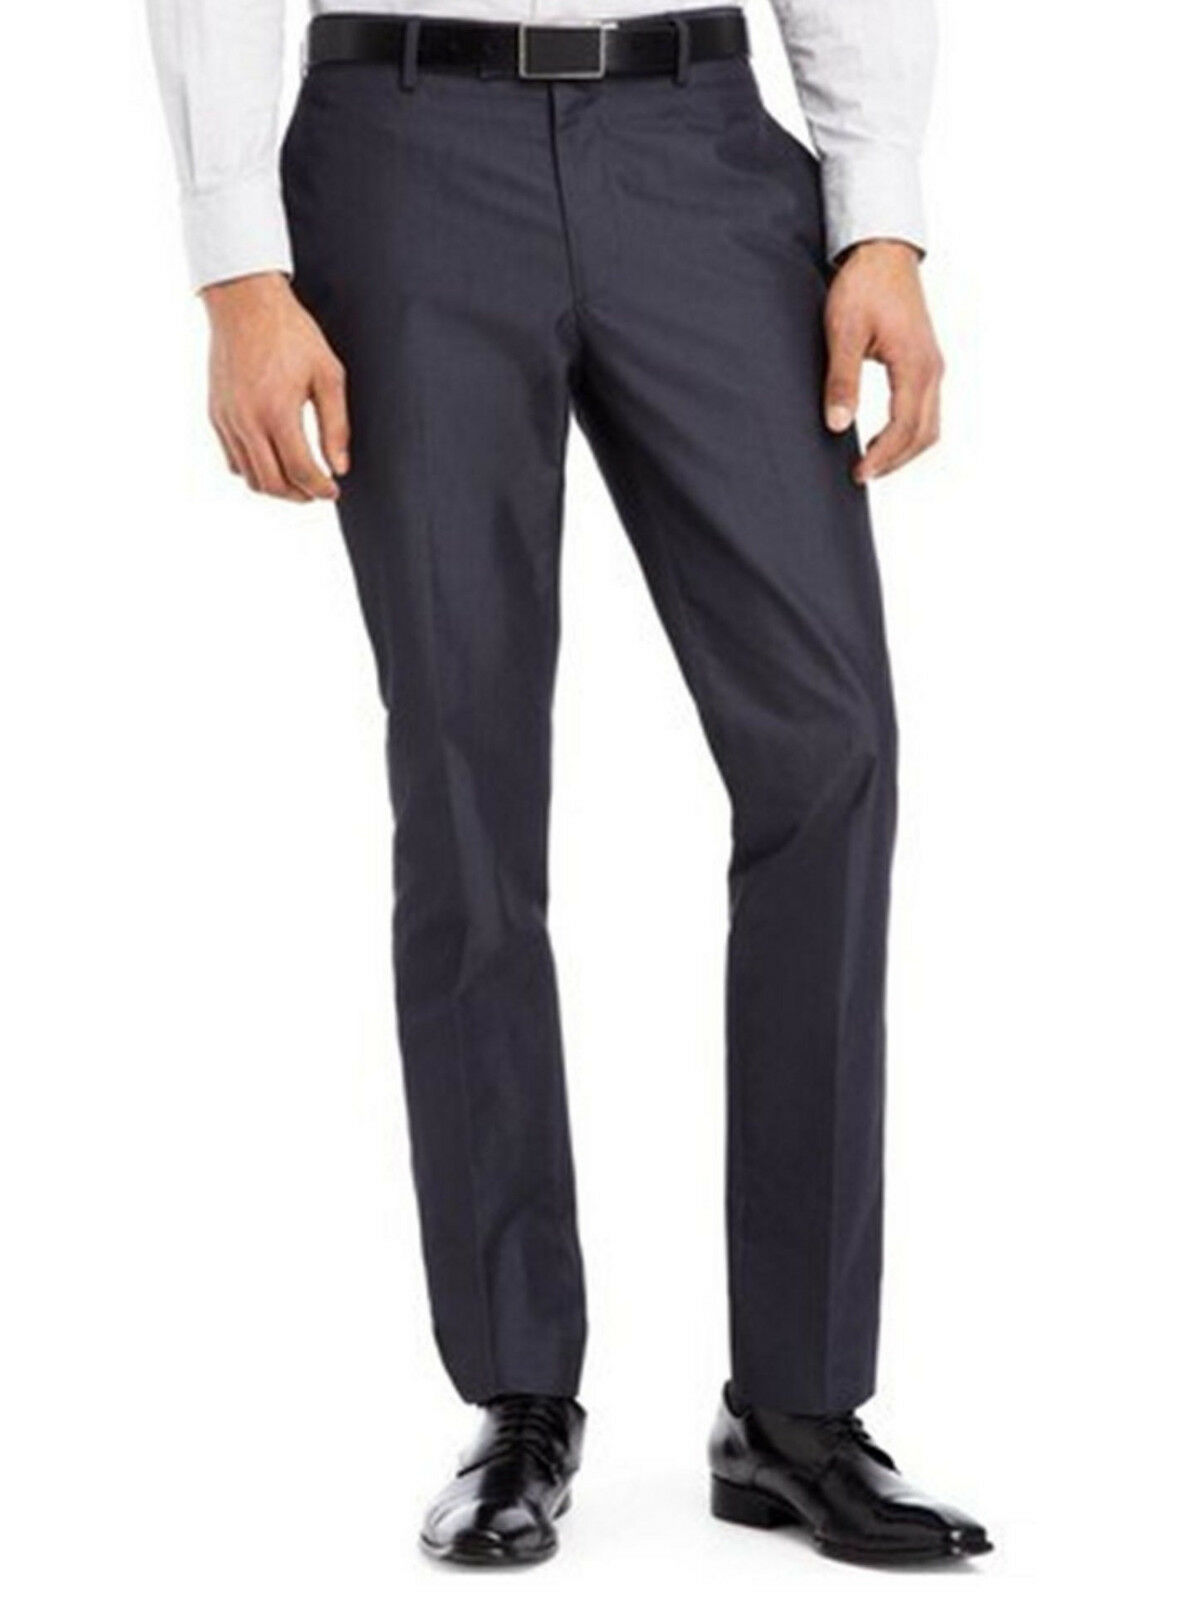 Kenneth Cole Reaction Men's Straight-Fit Charcoal Combo Dress Pants 32W x 32L